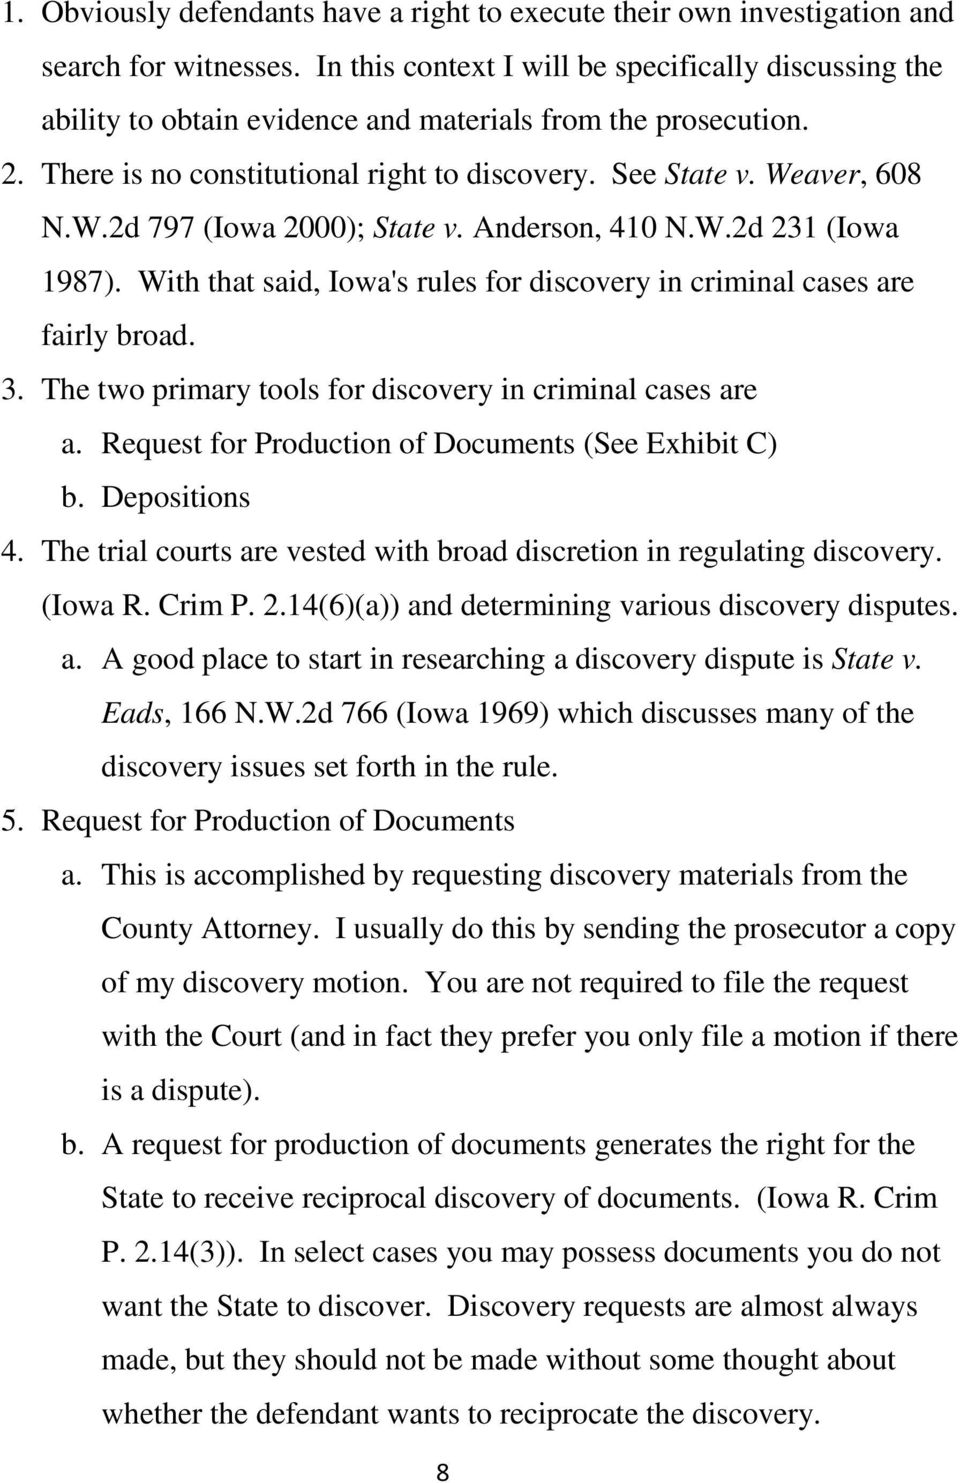 aver, 608 N.W.2d 797 (Iowa 2000); State v. Anderson, 410 N.W.2d 231 (Iowa 1987). With that said, Iowa's rules for discovery in criminal cases are fairly broad. 3.